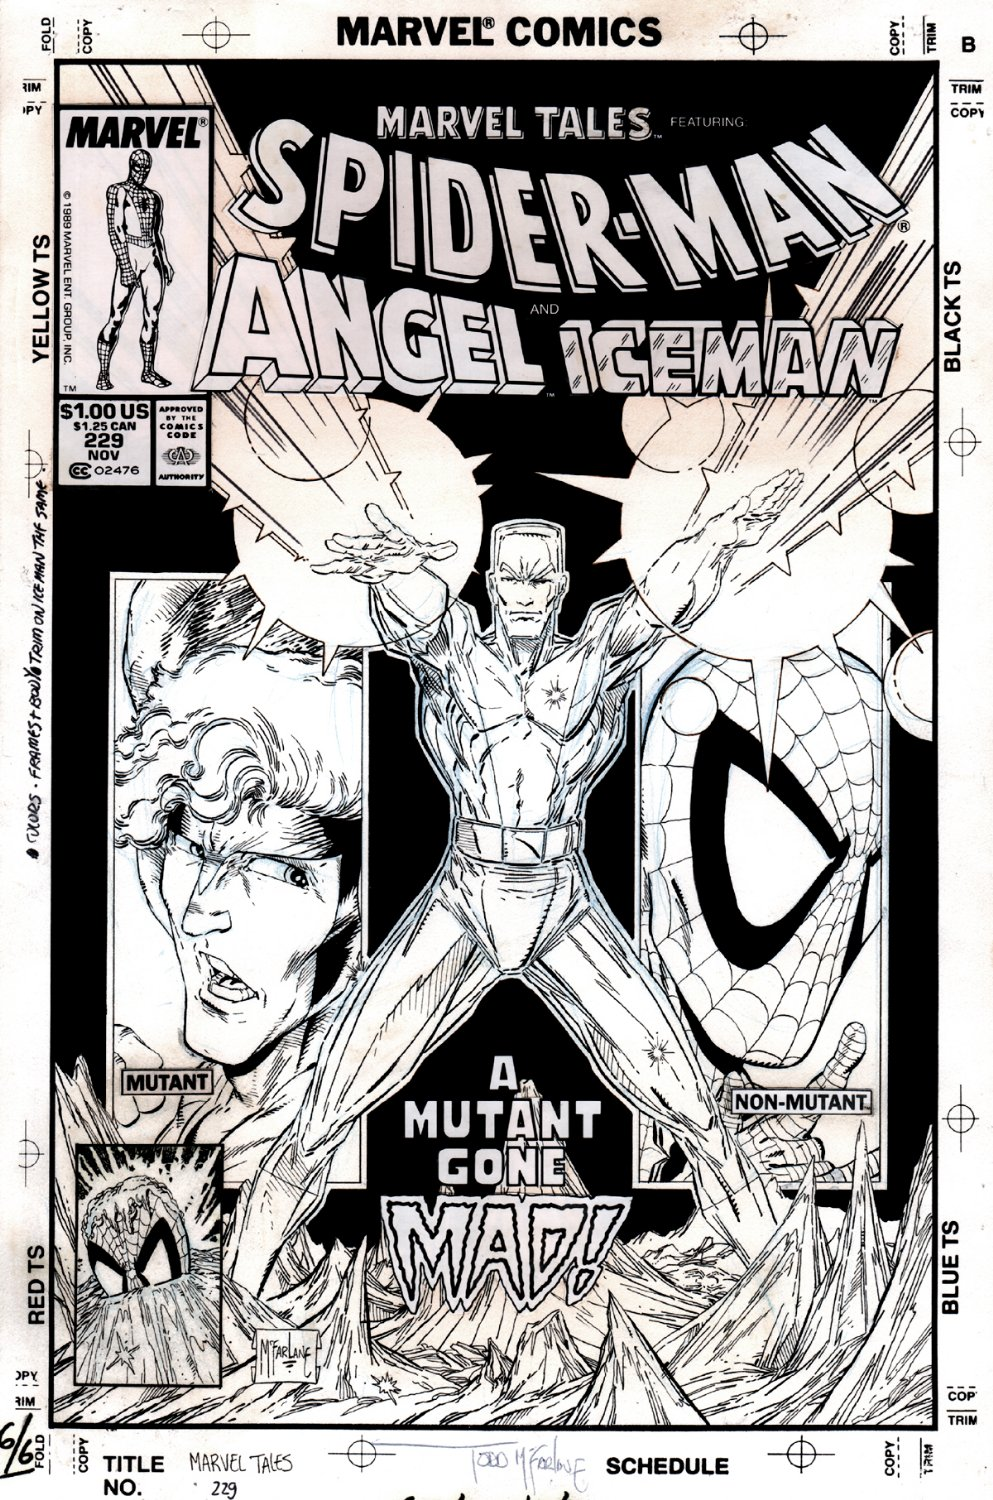 Marvel Tales #229 Cover (Spider-Man Drawn Twice, Angel, Iceman!) 1989